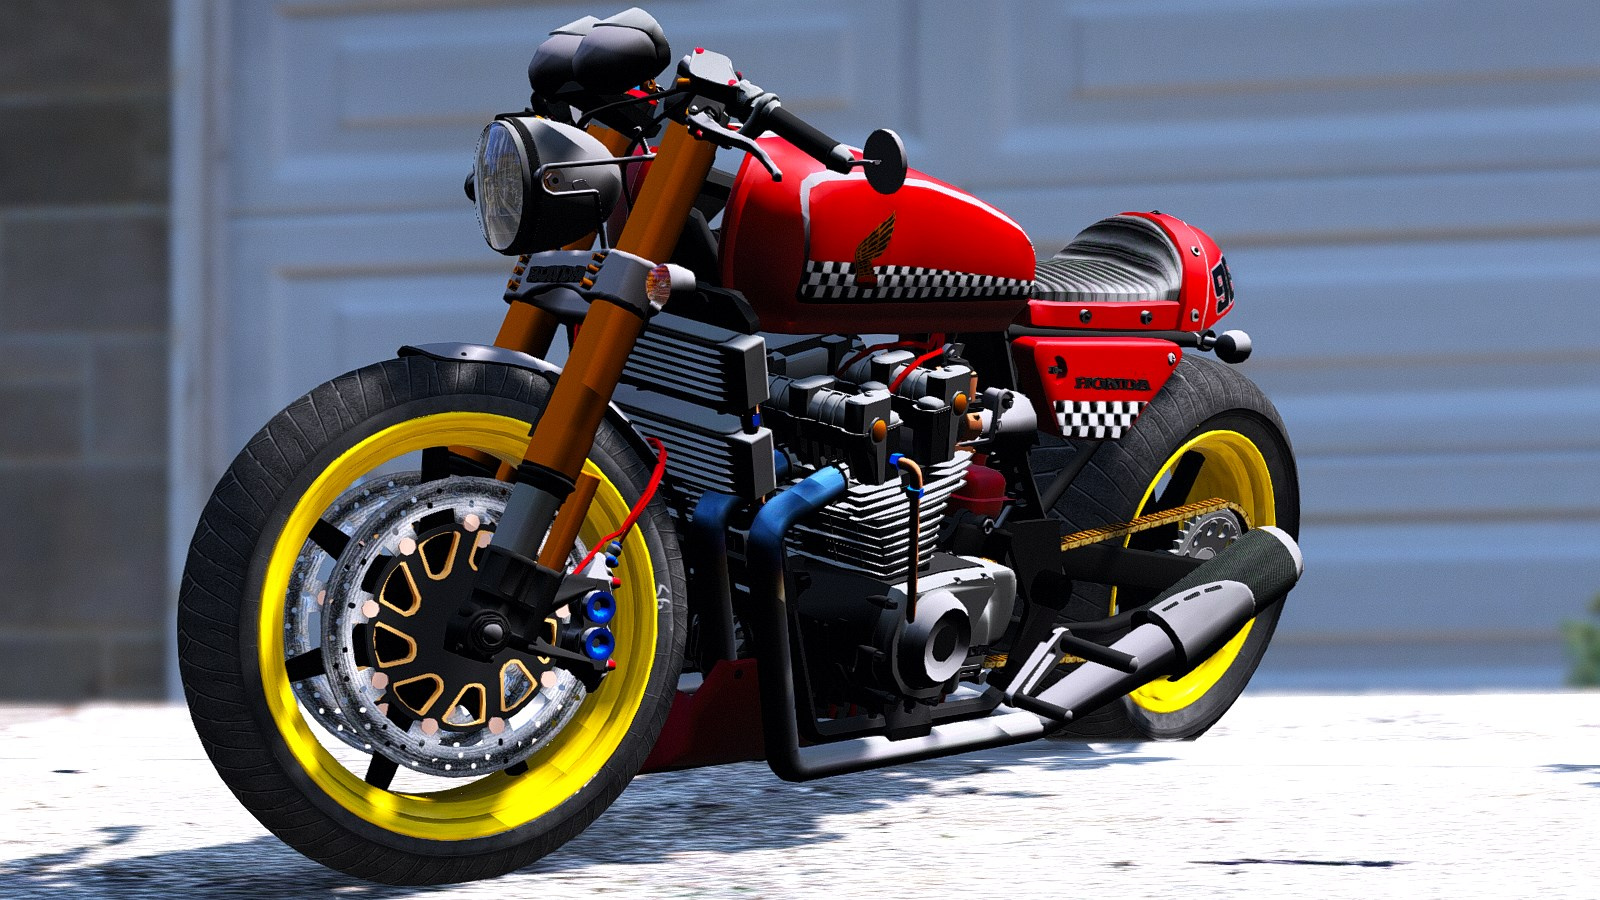 honda cb750 cafe racer animated gta5. Black Bedroom Furniture Sets. Home Design Ideas